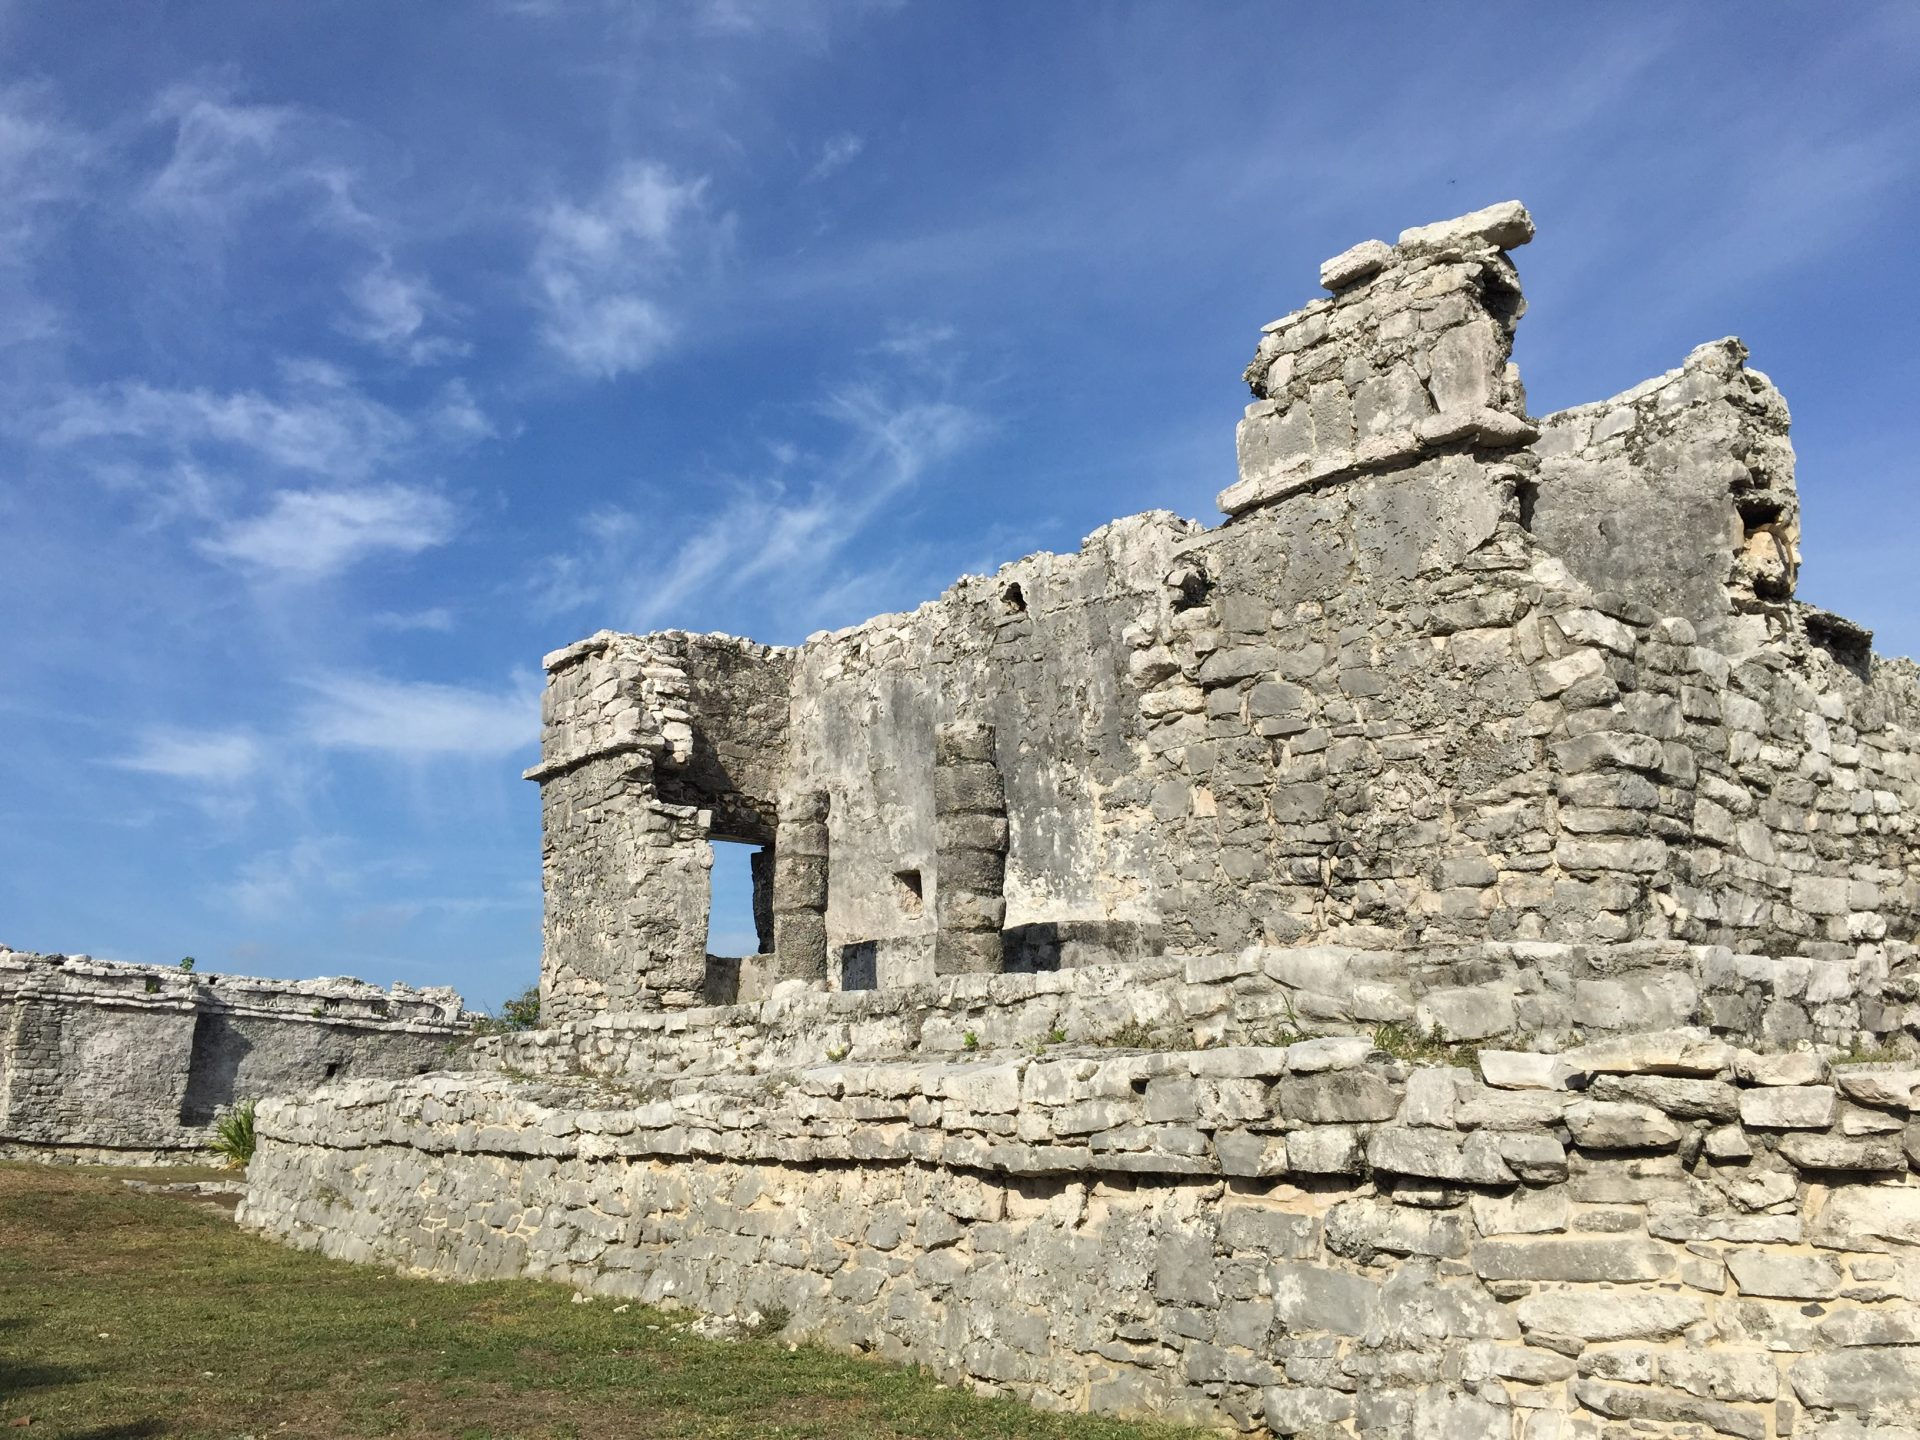 ruins tulum mexico - Travel Contests: October 9, 2019 - World Series, NYC, Mexico, & more